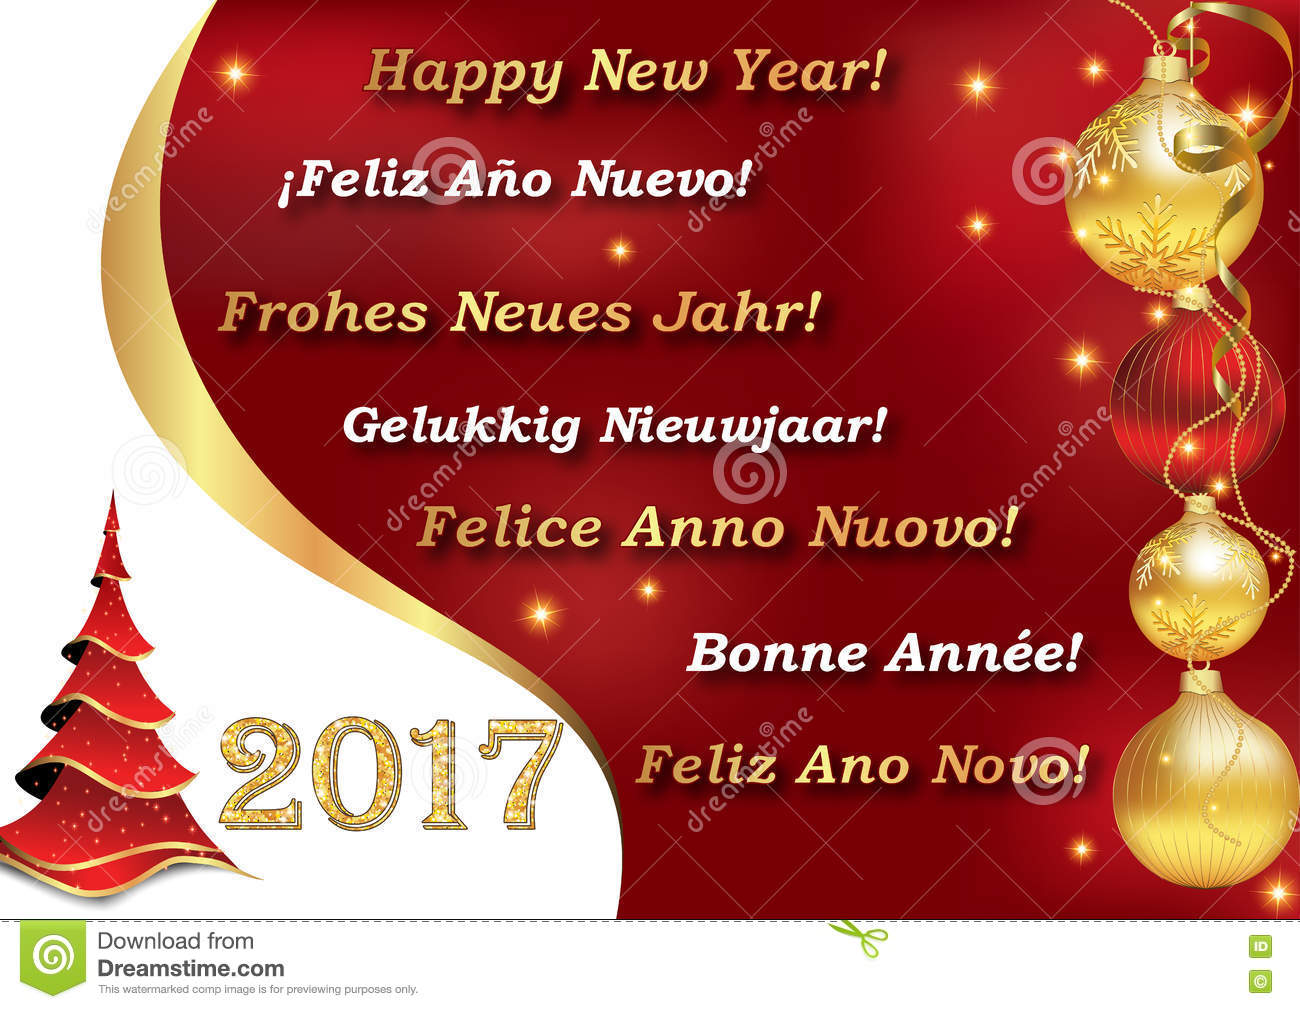 spanish new year messages